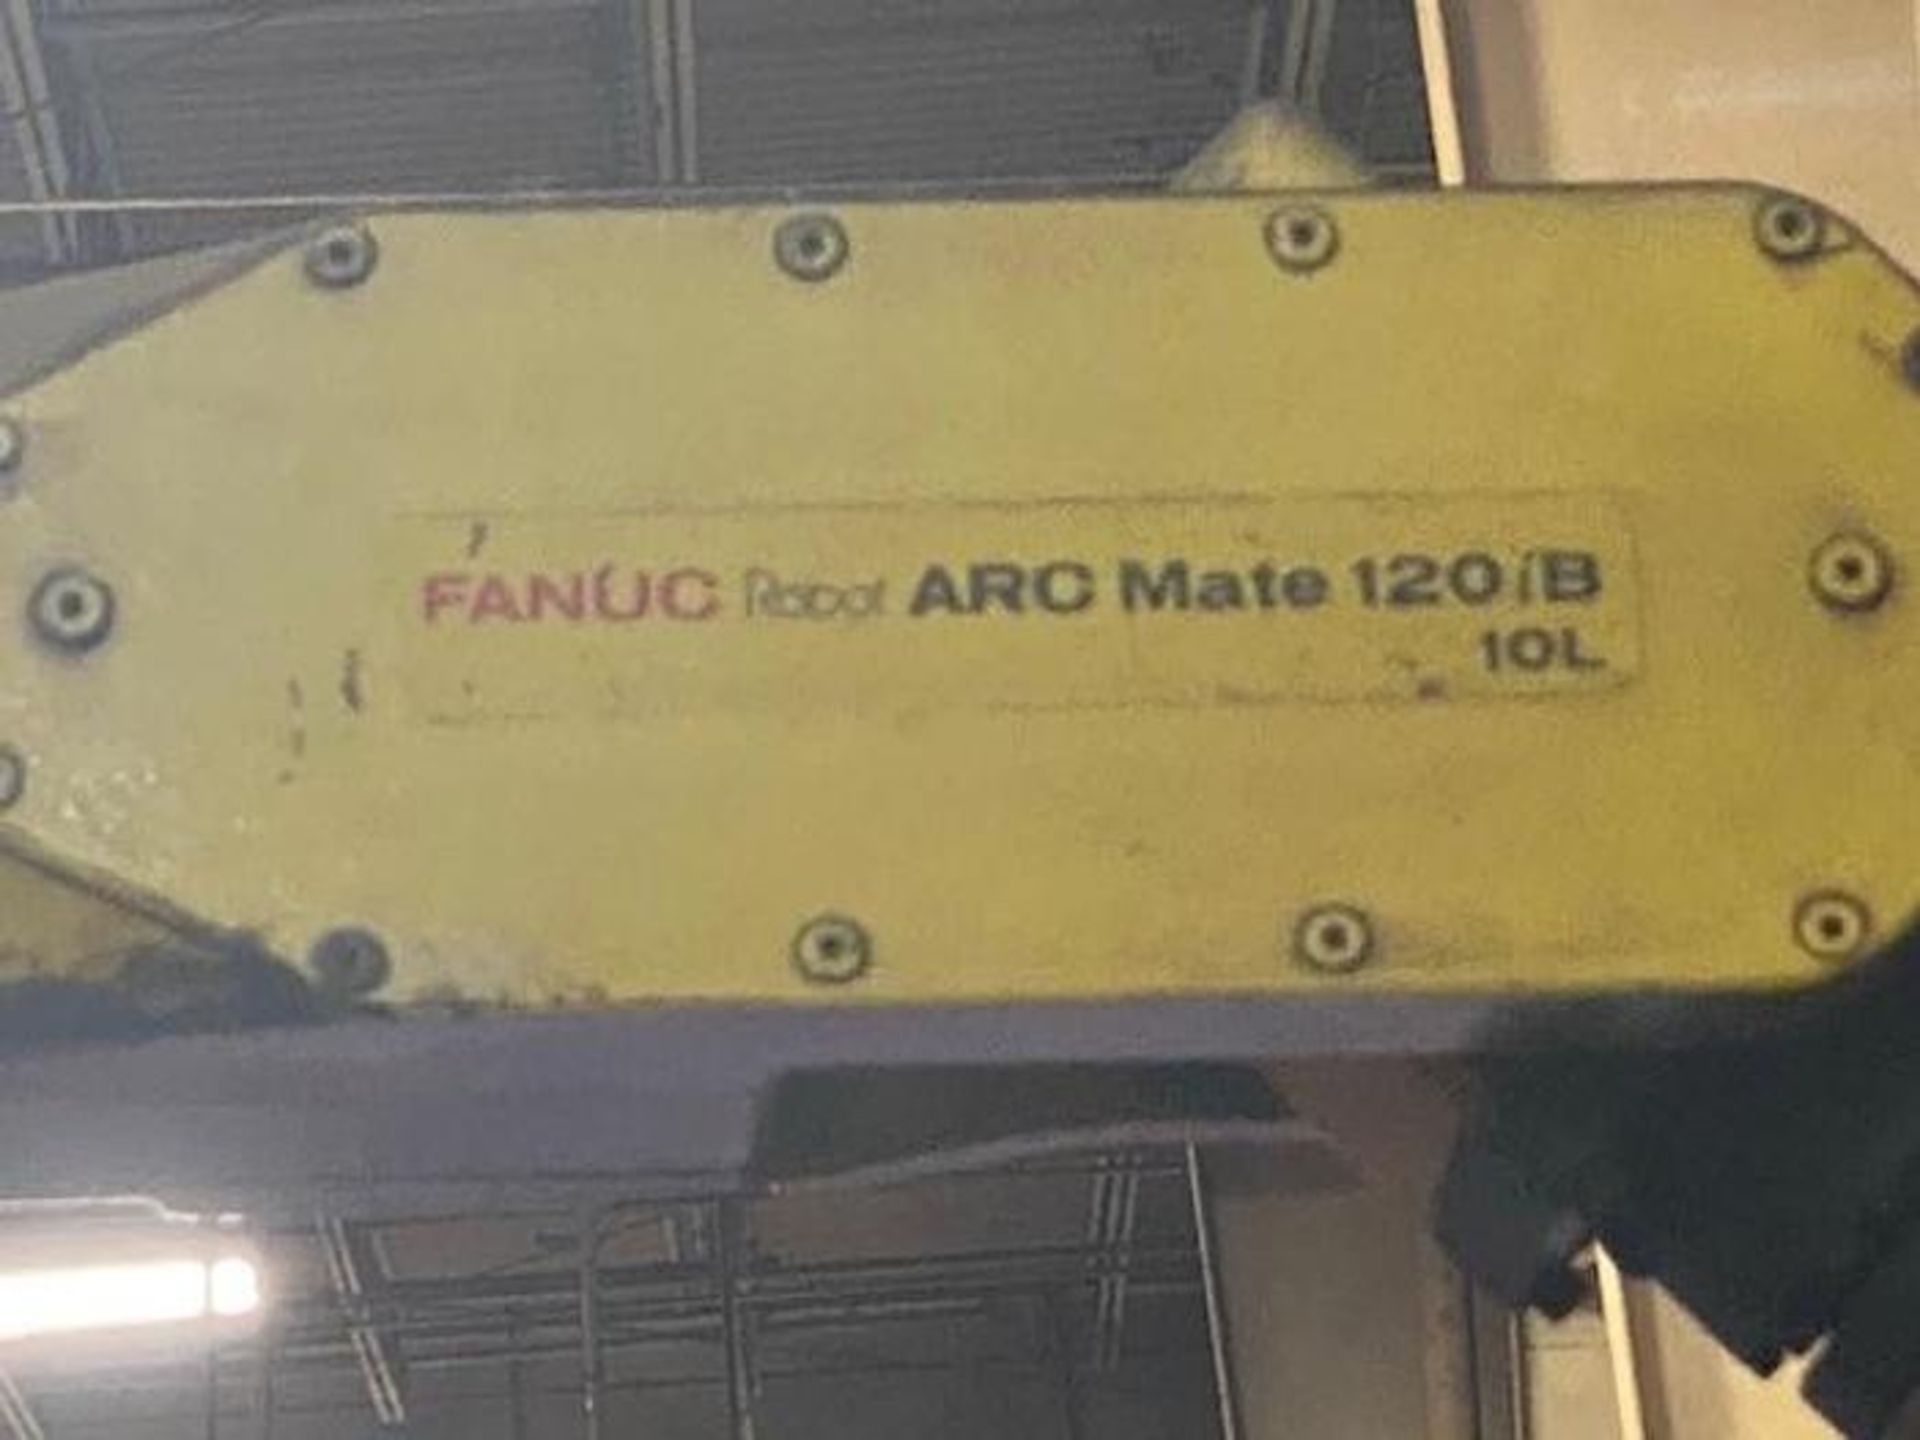 FANUC/LINCOLN DUAL TRUNION WELD CELL, FANUC ROBOT ARCMATE 120iB/10L WITH R-J3iB CONTROL - Image 4 of 11